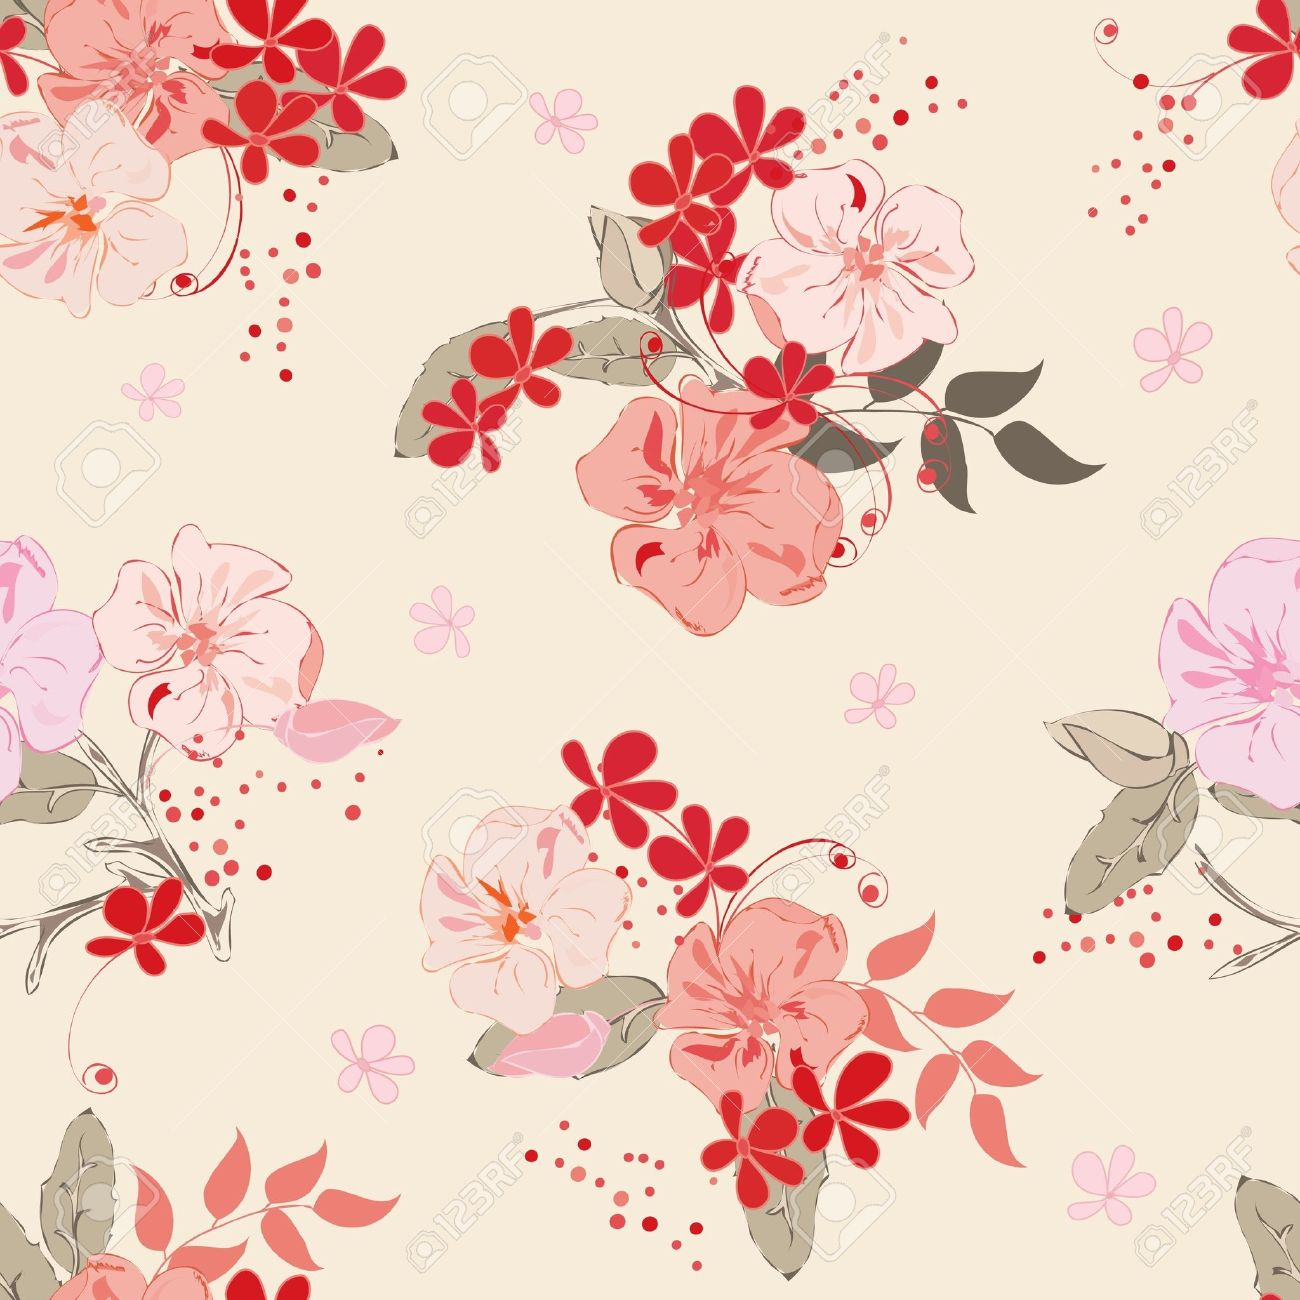 Floral vintage background - Abstract Floral Seamless Pattern Background